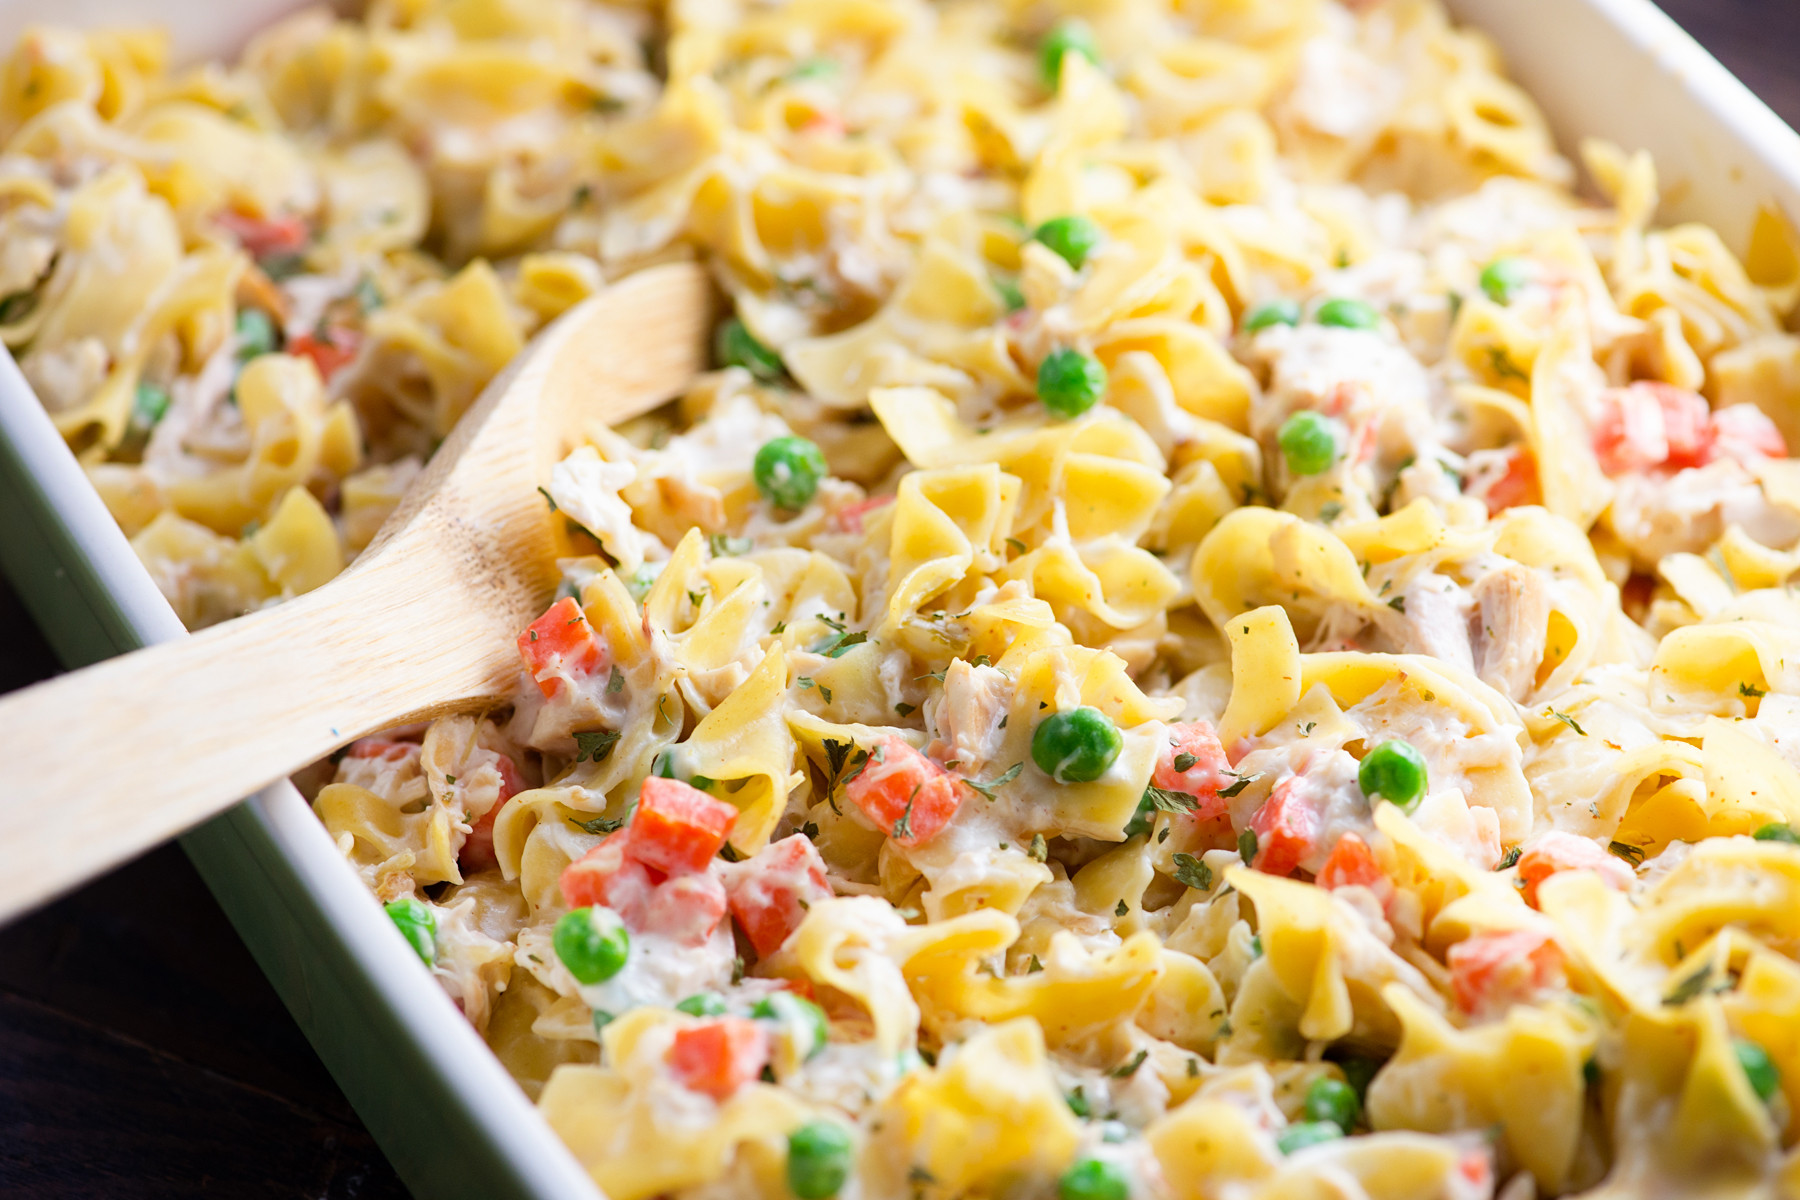 Chicken Noodle Casserole Recipes  chicken and noodle casserole recipes with pictures